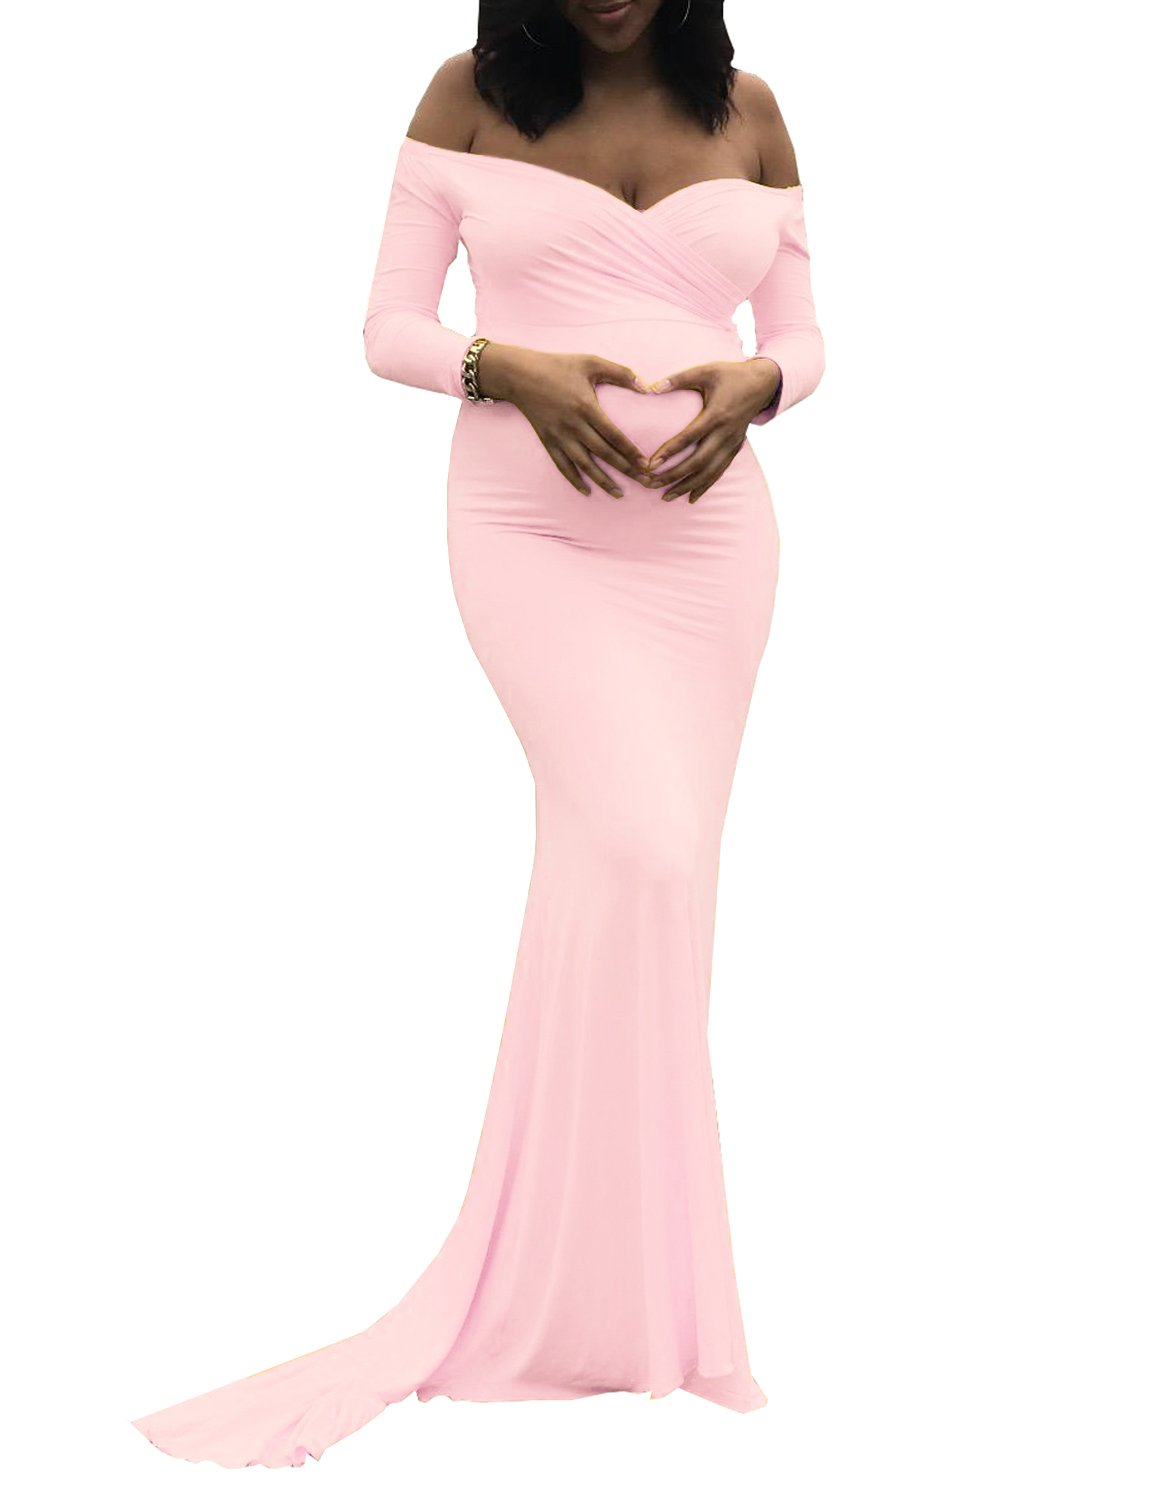 Saslax Women's Off Shoulders Sweetheart Neckline Long Sleeves Maternity Slim Fit Gown for Photography Dress Pink L